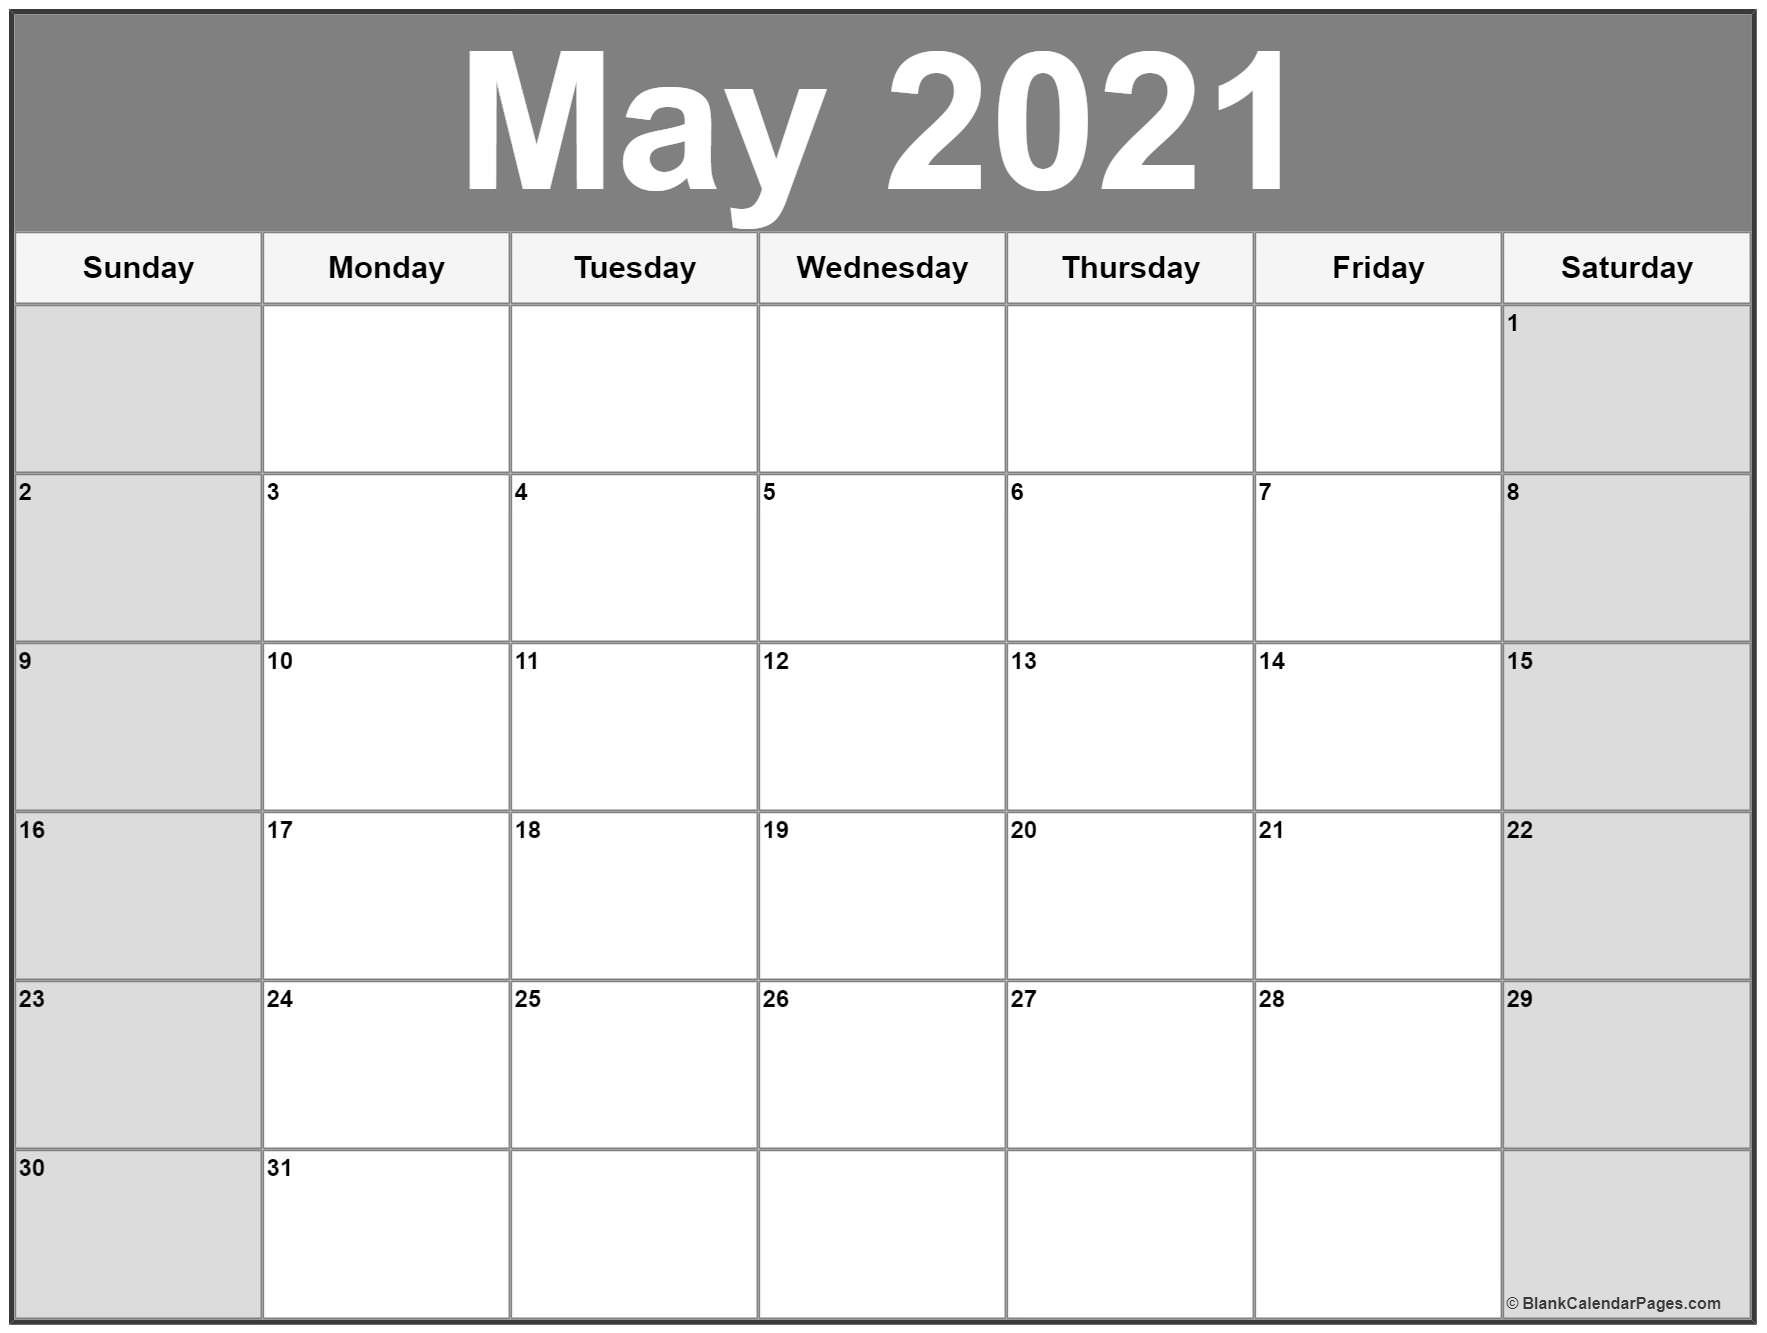 May 2021 Calendar   Free Printable Monthly Calendars Blank 30 Day Calendar Starting May 24